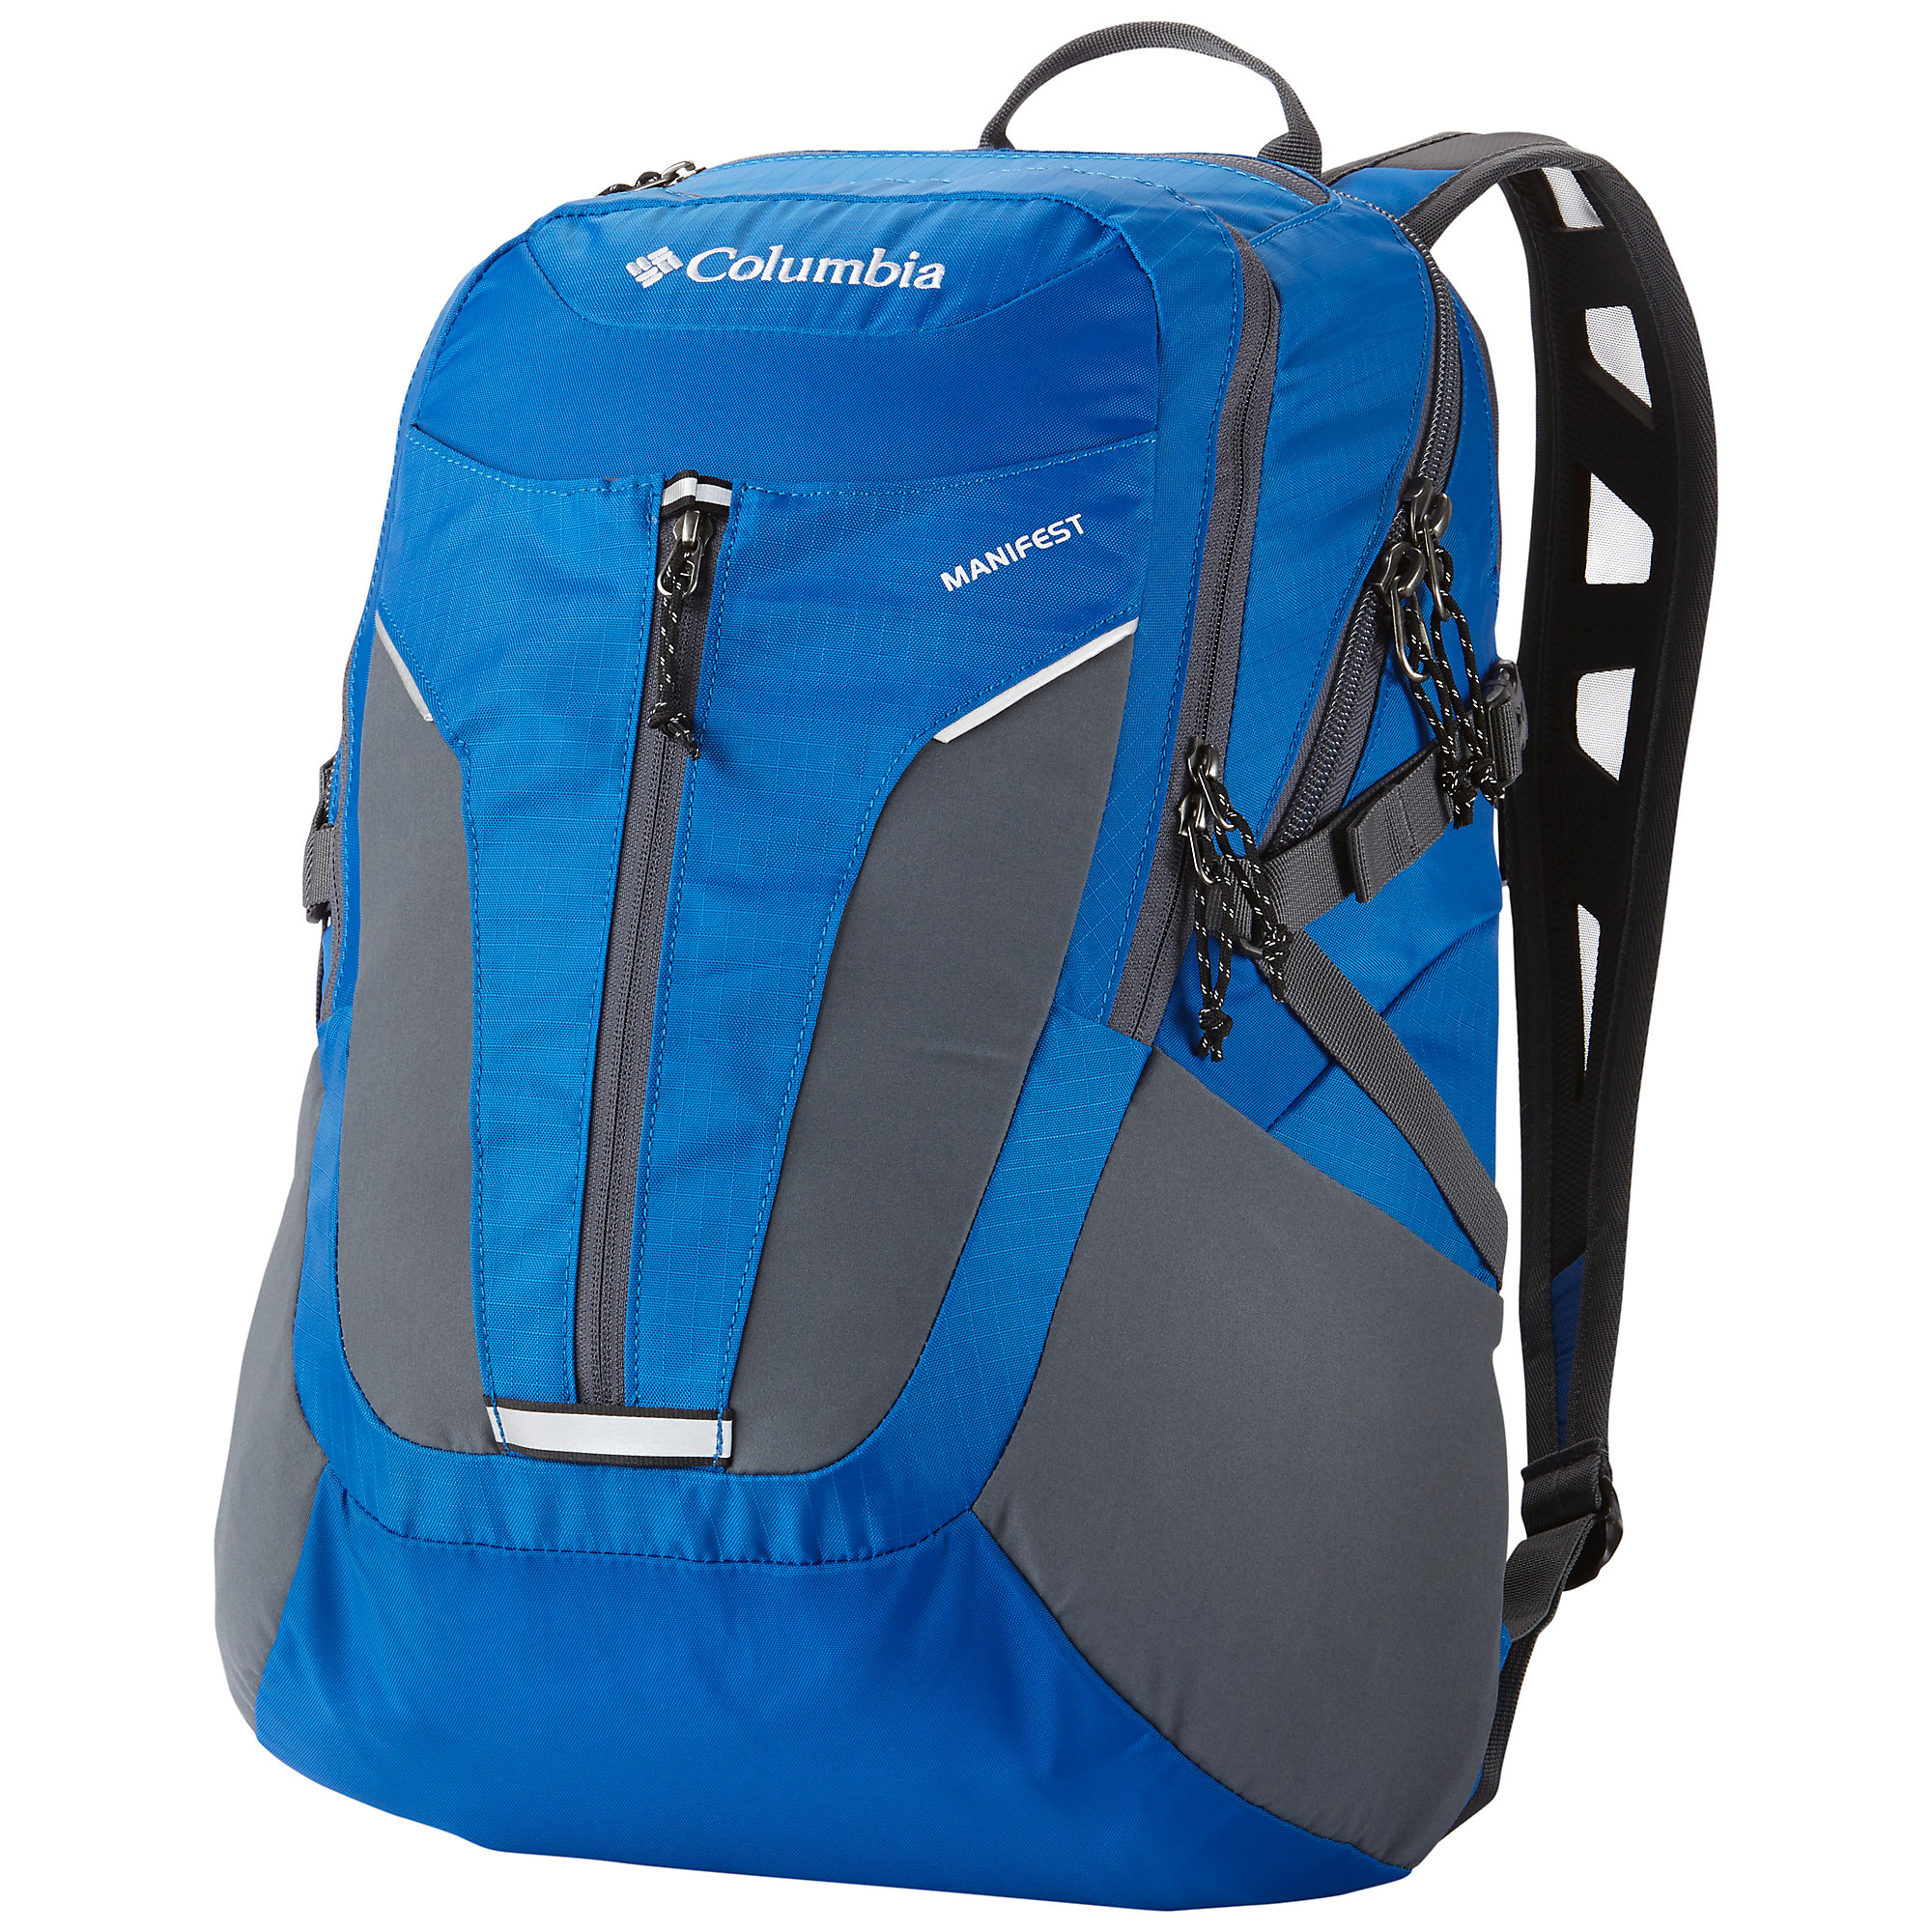 photo of a Columbia hiking/camping product